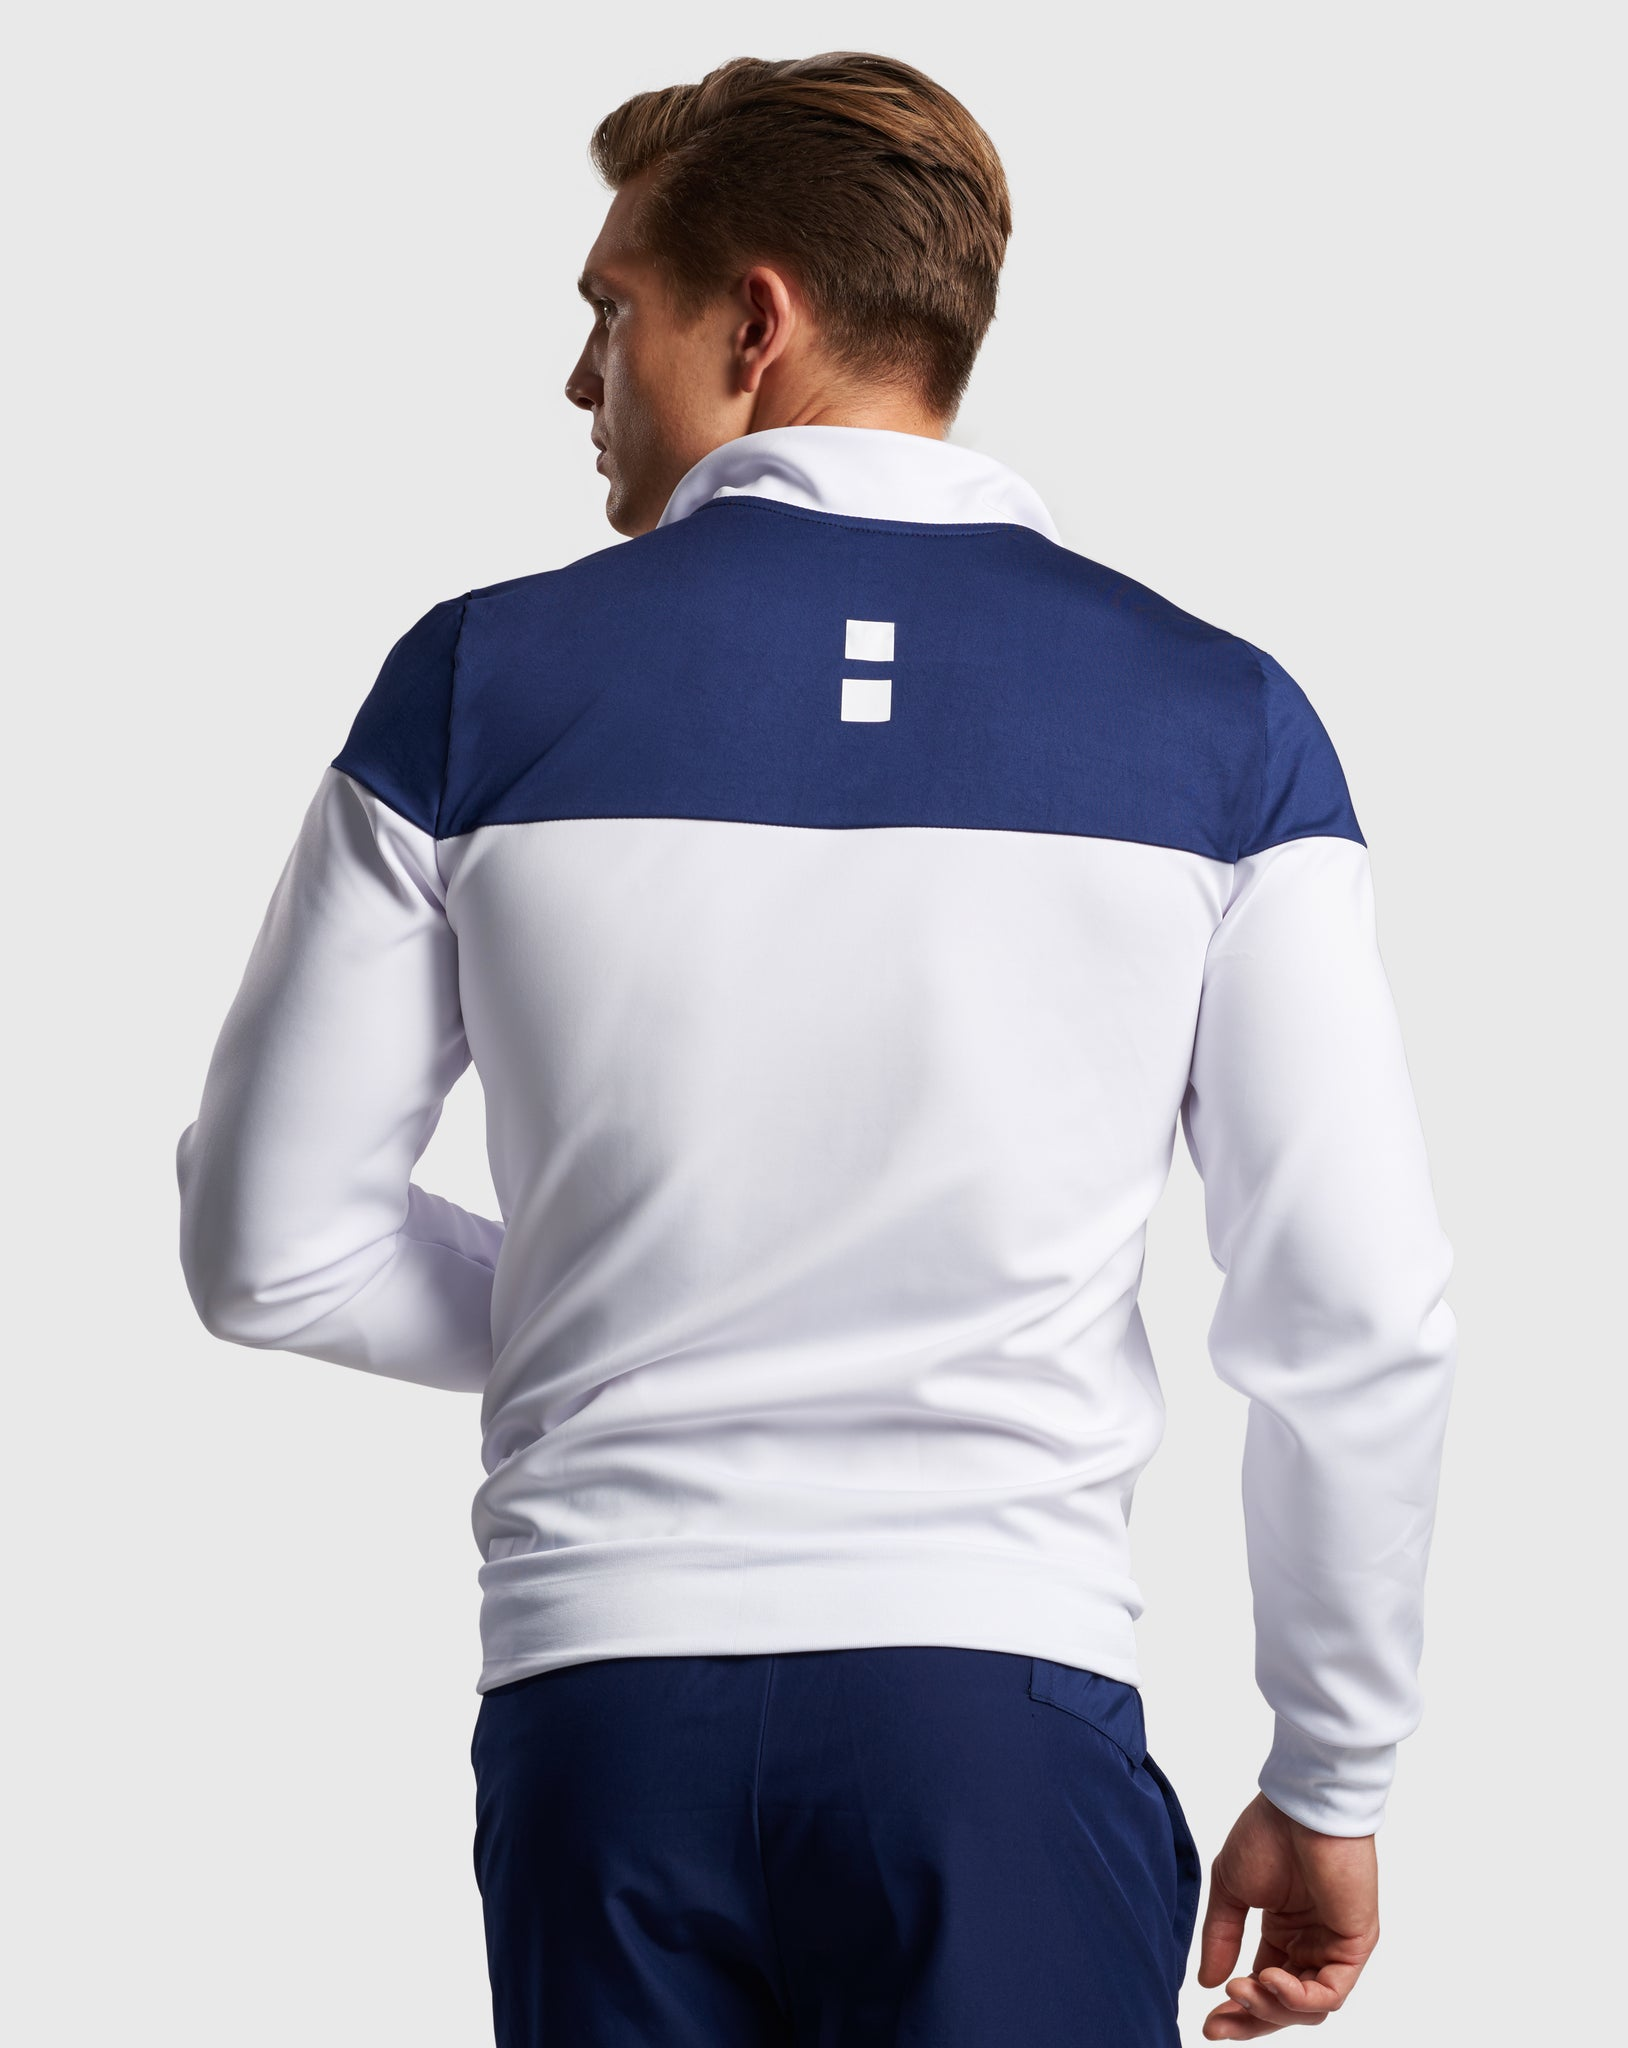 nordicdots tennis brand men's jacket